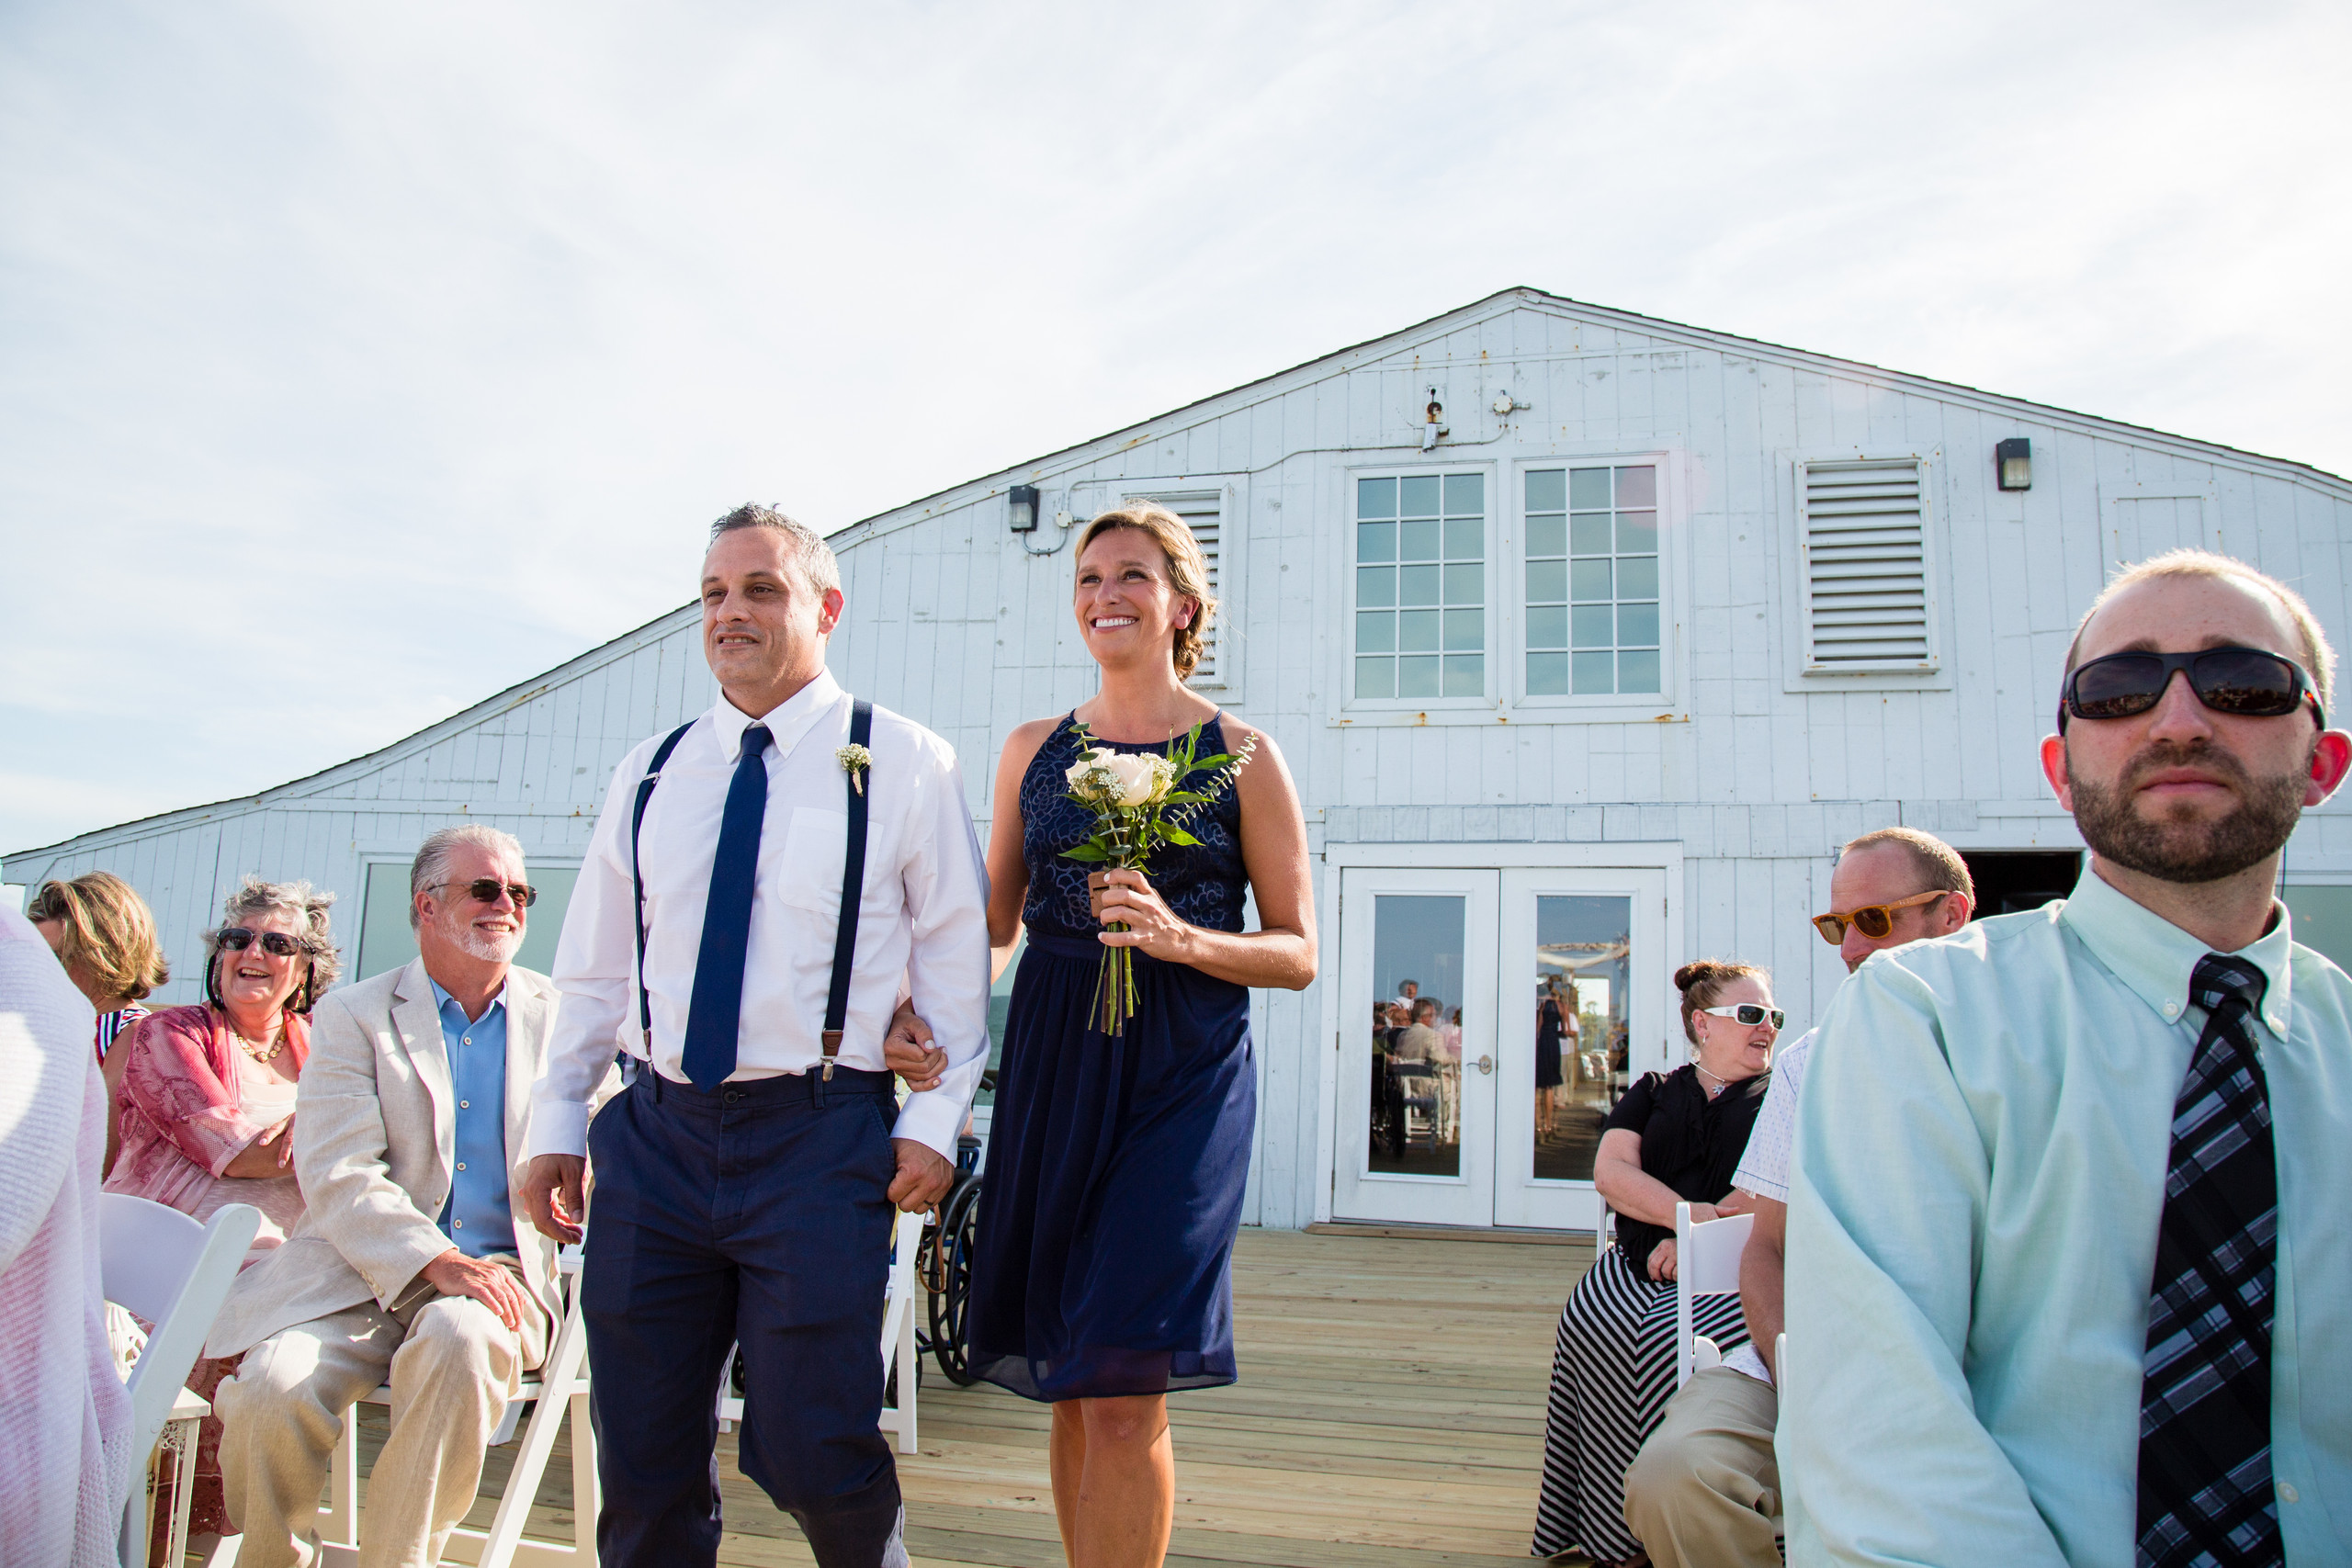 Kitty Hawk Pier House Wedding, Kitty Hawk Hilton Garden Inn Wedding, Katiedid Photography, OBX Wedding, Outer Banks Wedding